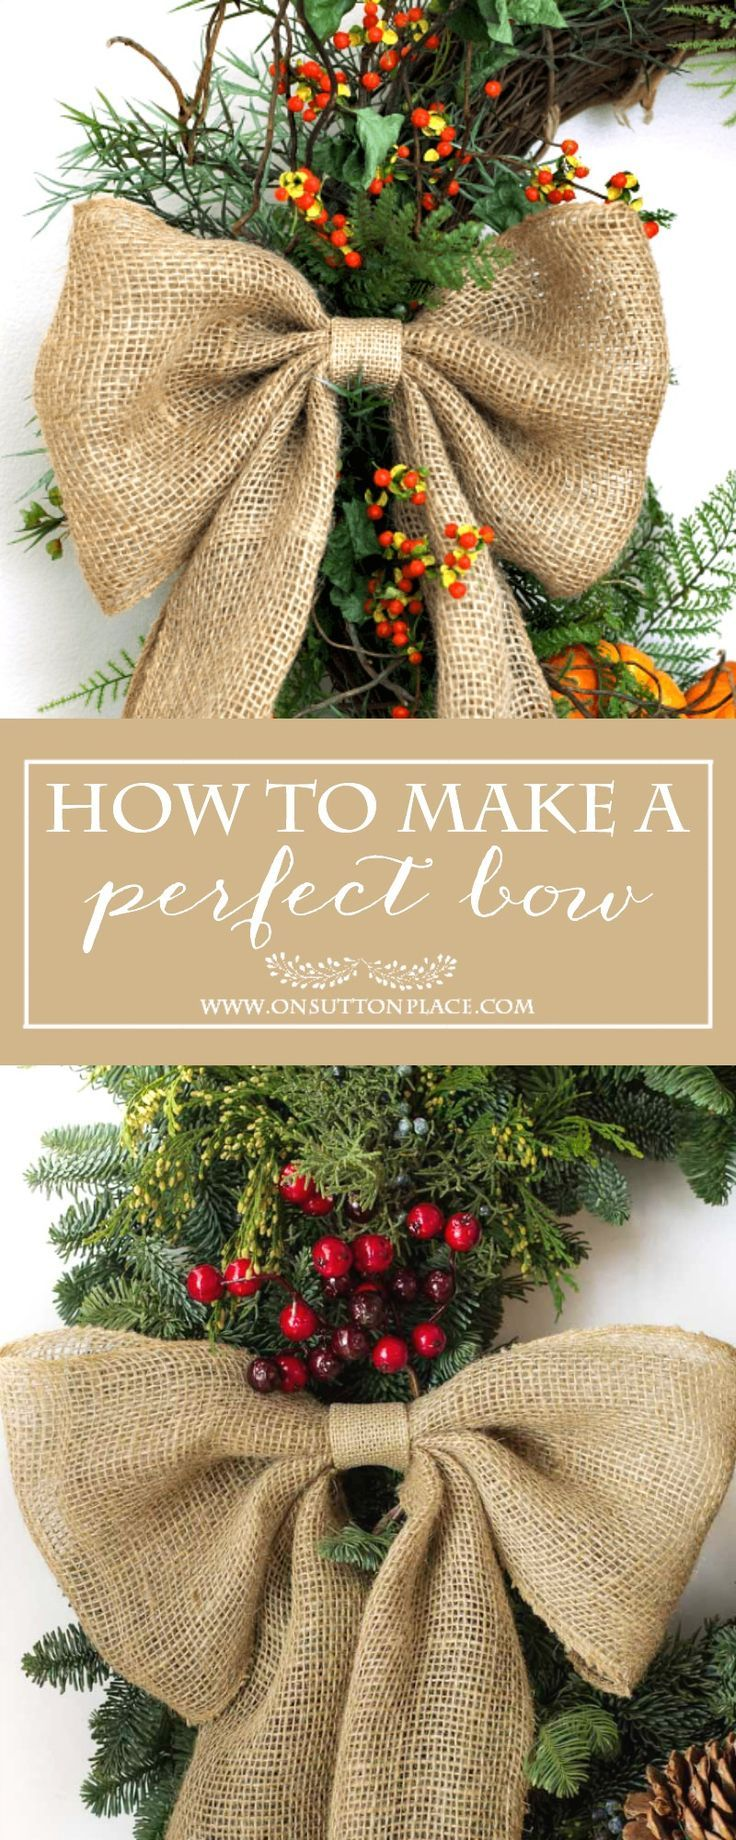 How to Make a Perfect Burlap Bow | Easy tutorial to make a perfect bow every time.